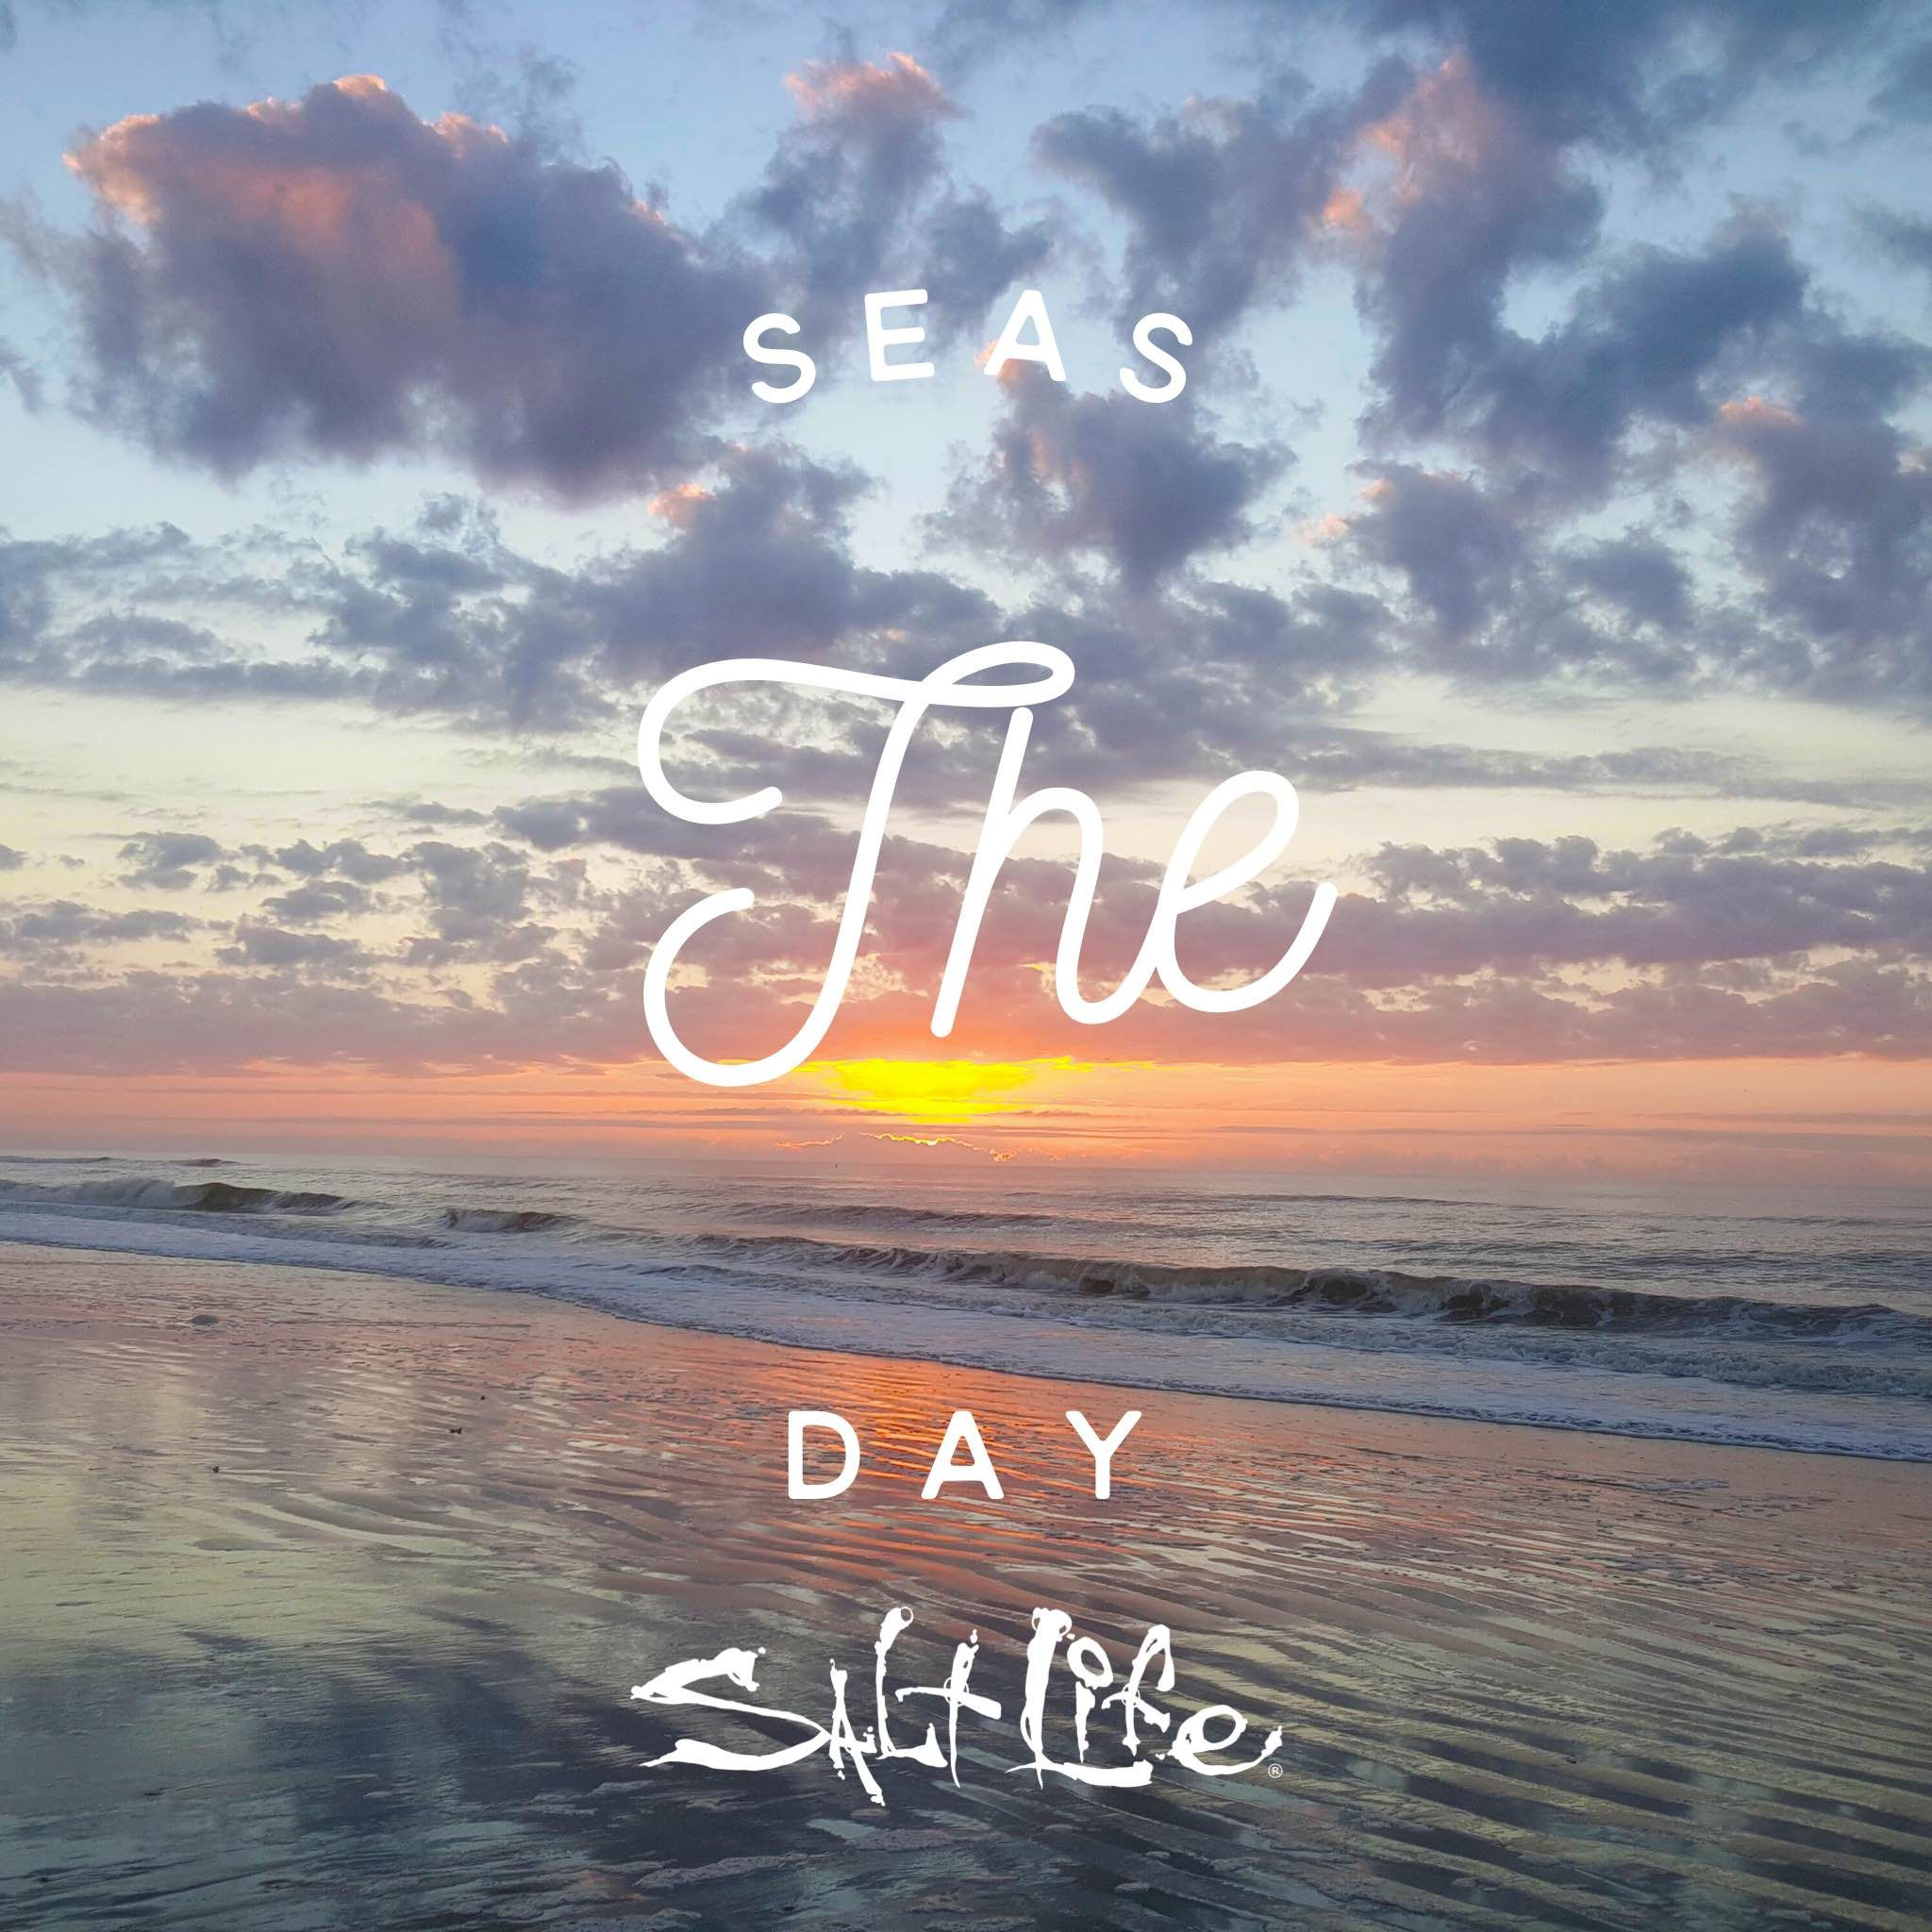 Seas the day SaltLife (With images) Beach quotes, Beach